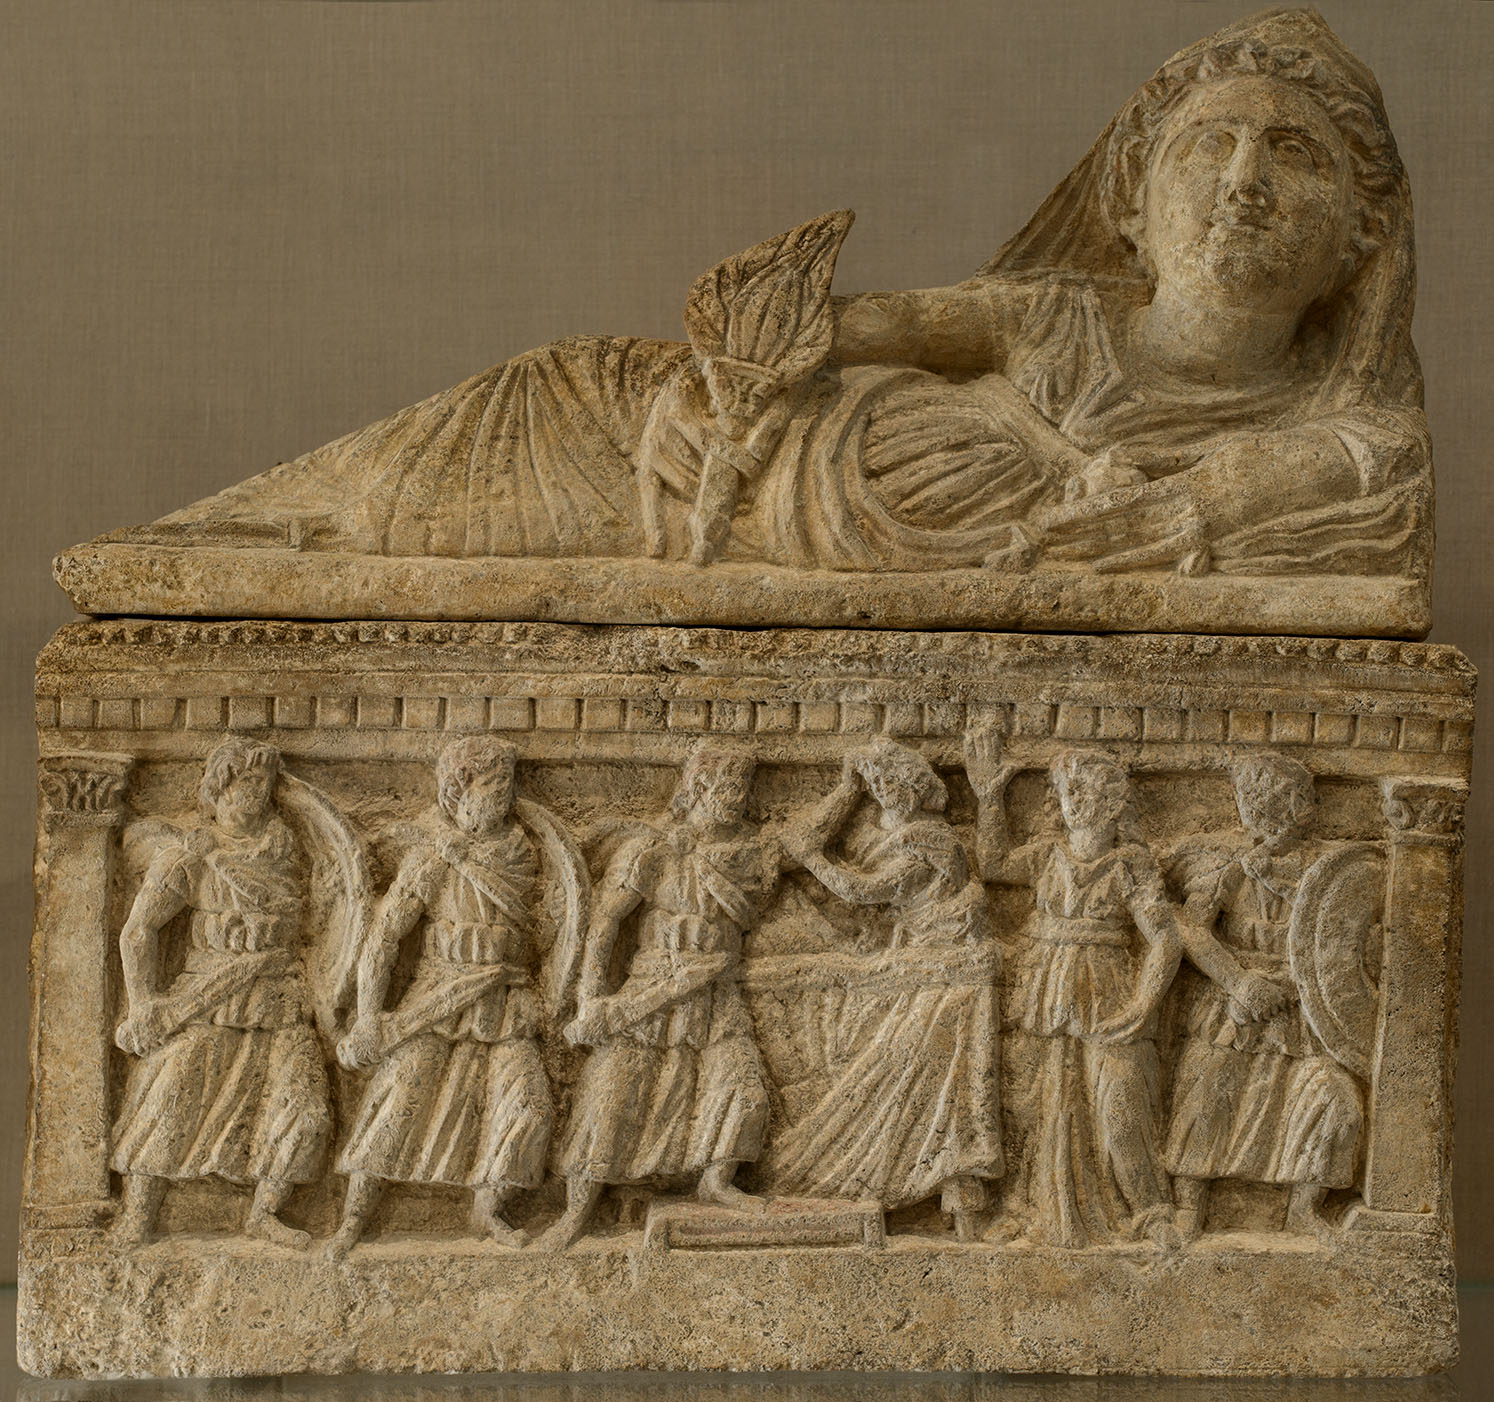 Cinerary urn with a scene of a murder of a woman. Travertine. 2nd century BCE. Inv. No. 96.9.224 a, b. New York, the Metropolitan Museum of Art